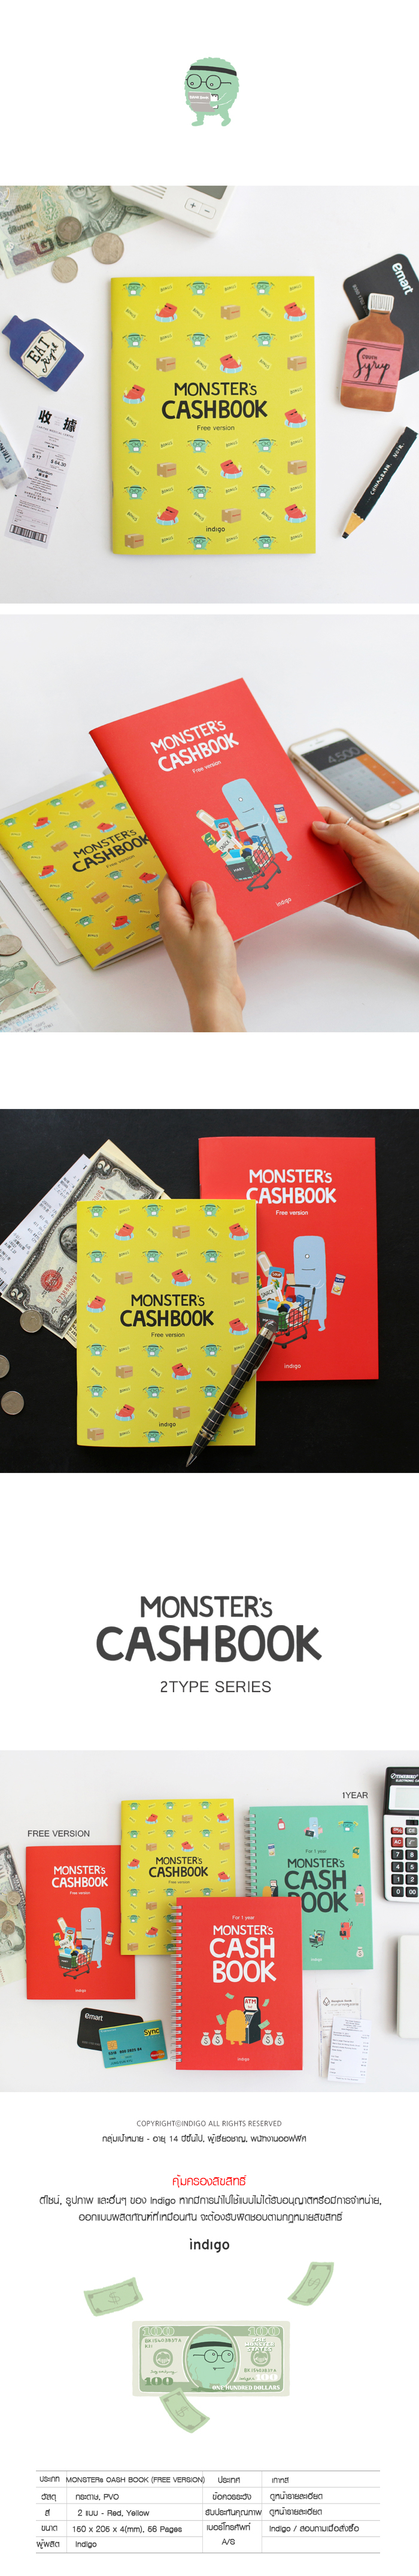 monster-cashbook-free-6.jpg